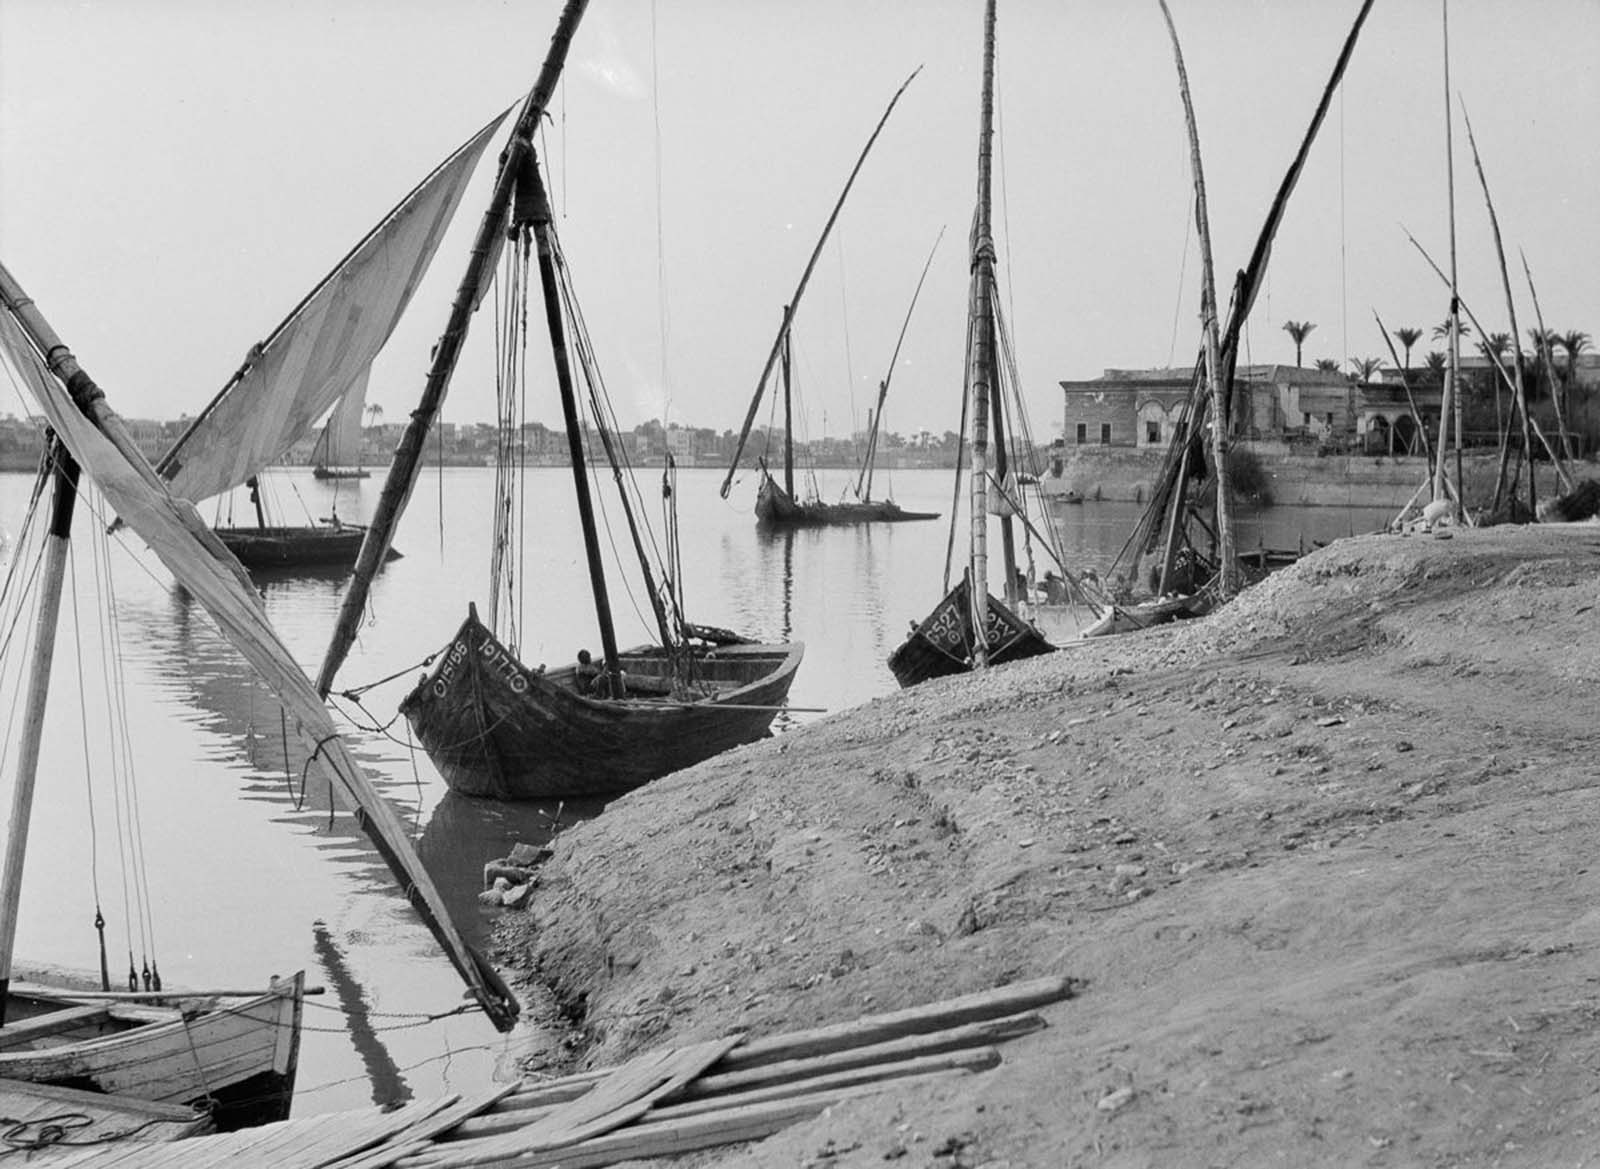 Boats along the banks of the Nile. 1934.